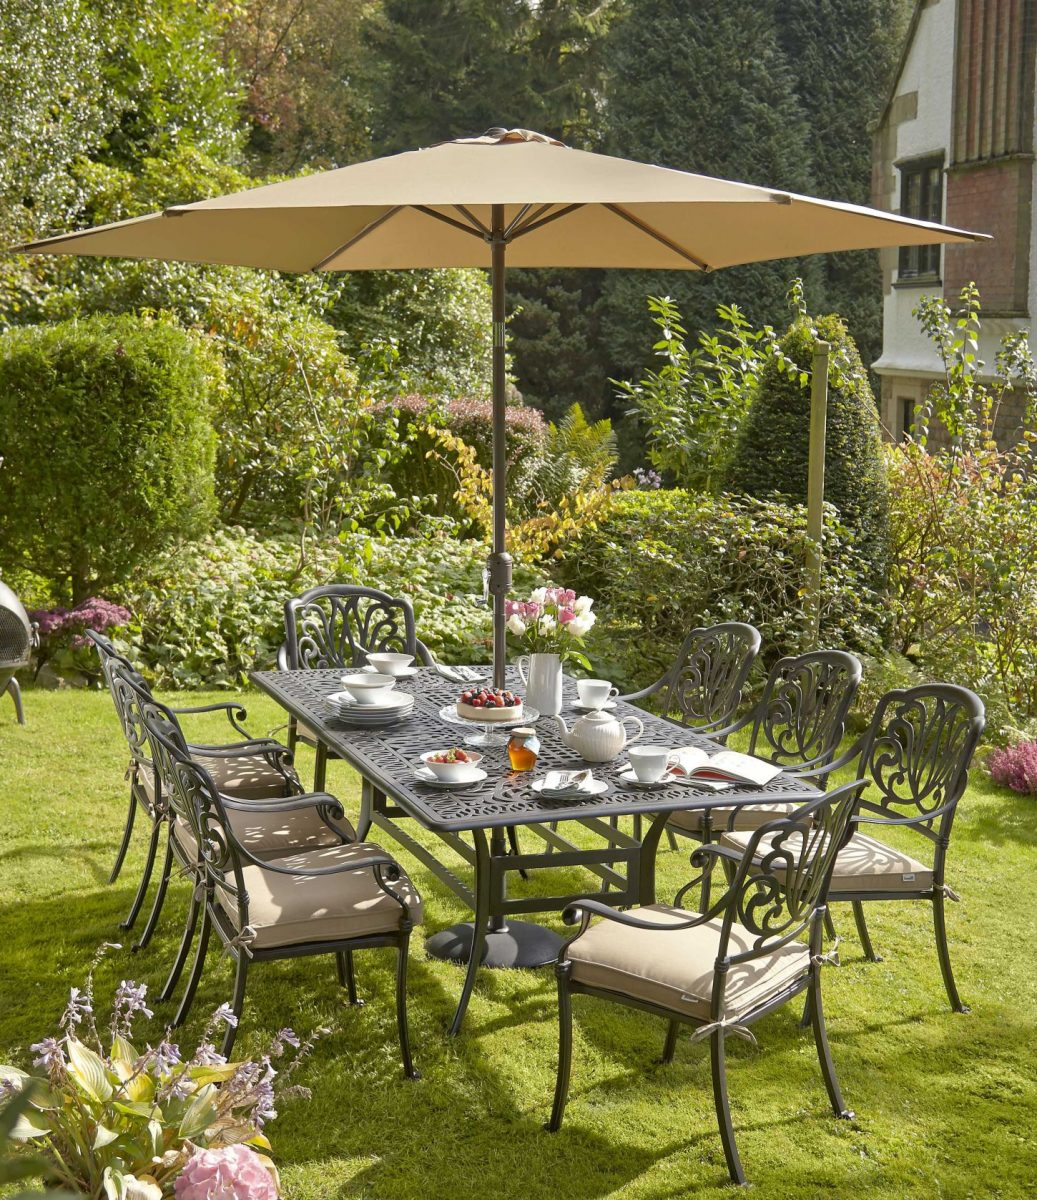 obr.14_wyevale_mortimer-8-seater-dining-set-with-cushions-and-parasol-1200x1200.jpg